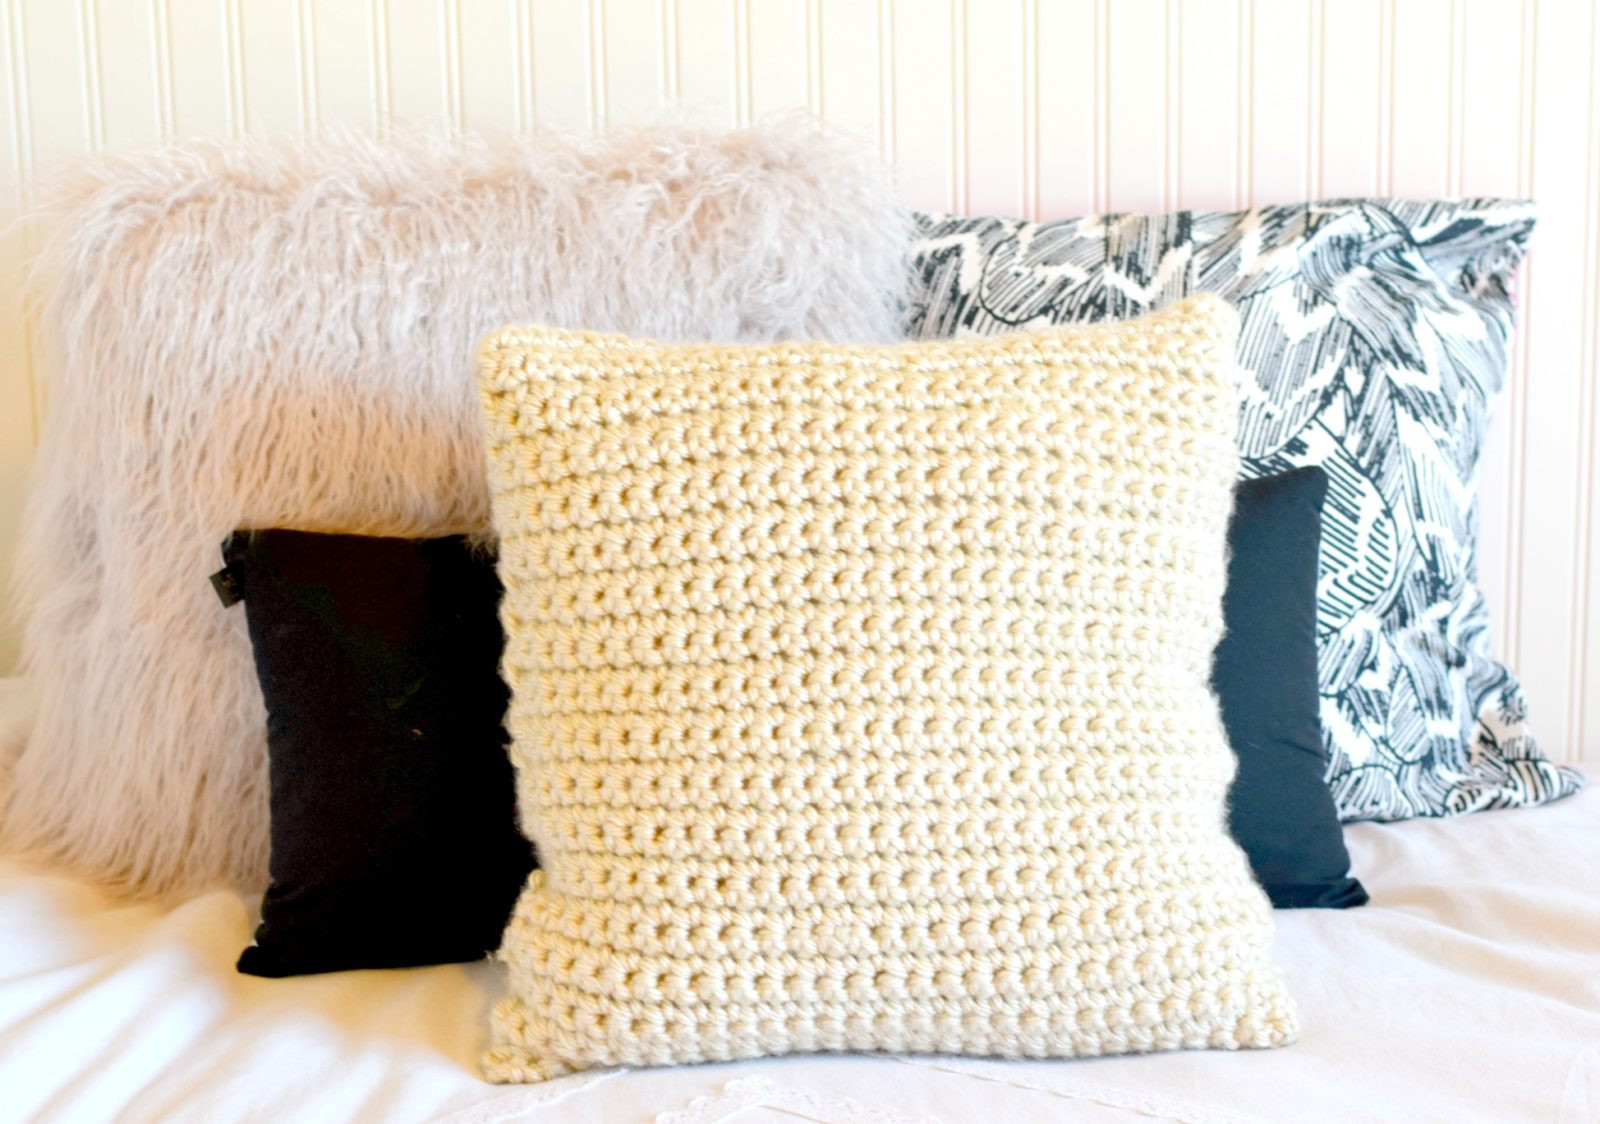 Crochet Pillow Beautiful Super Chunky Crochet Pillow Project – Mama In A Stitch Of Superb 50 Images Crochet Pillow